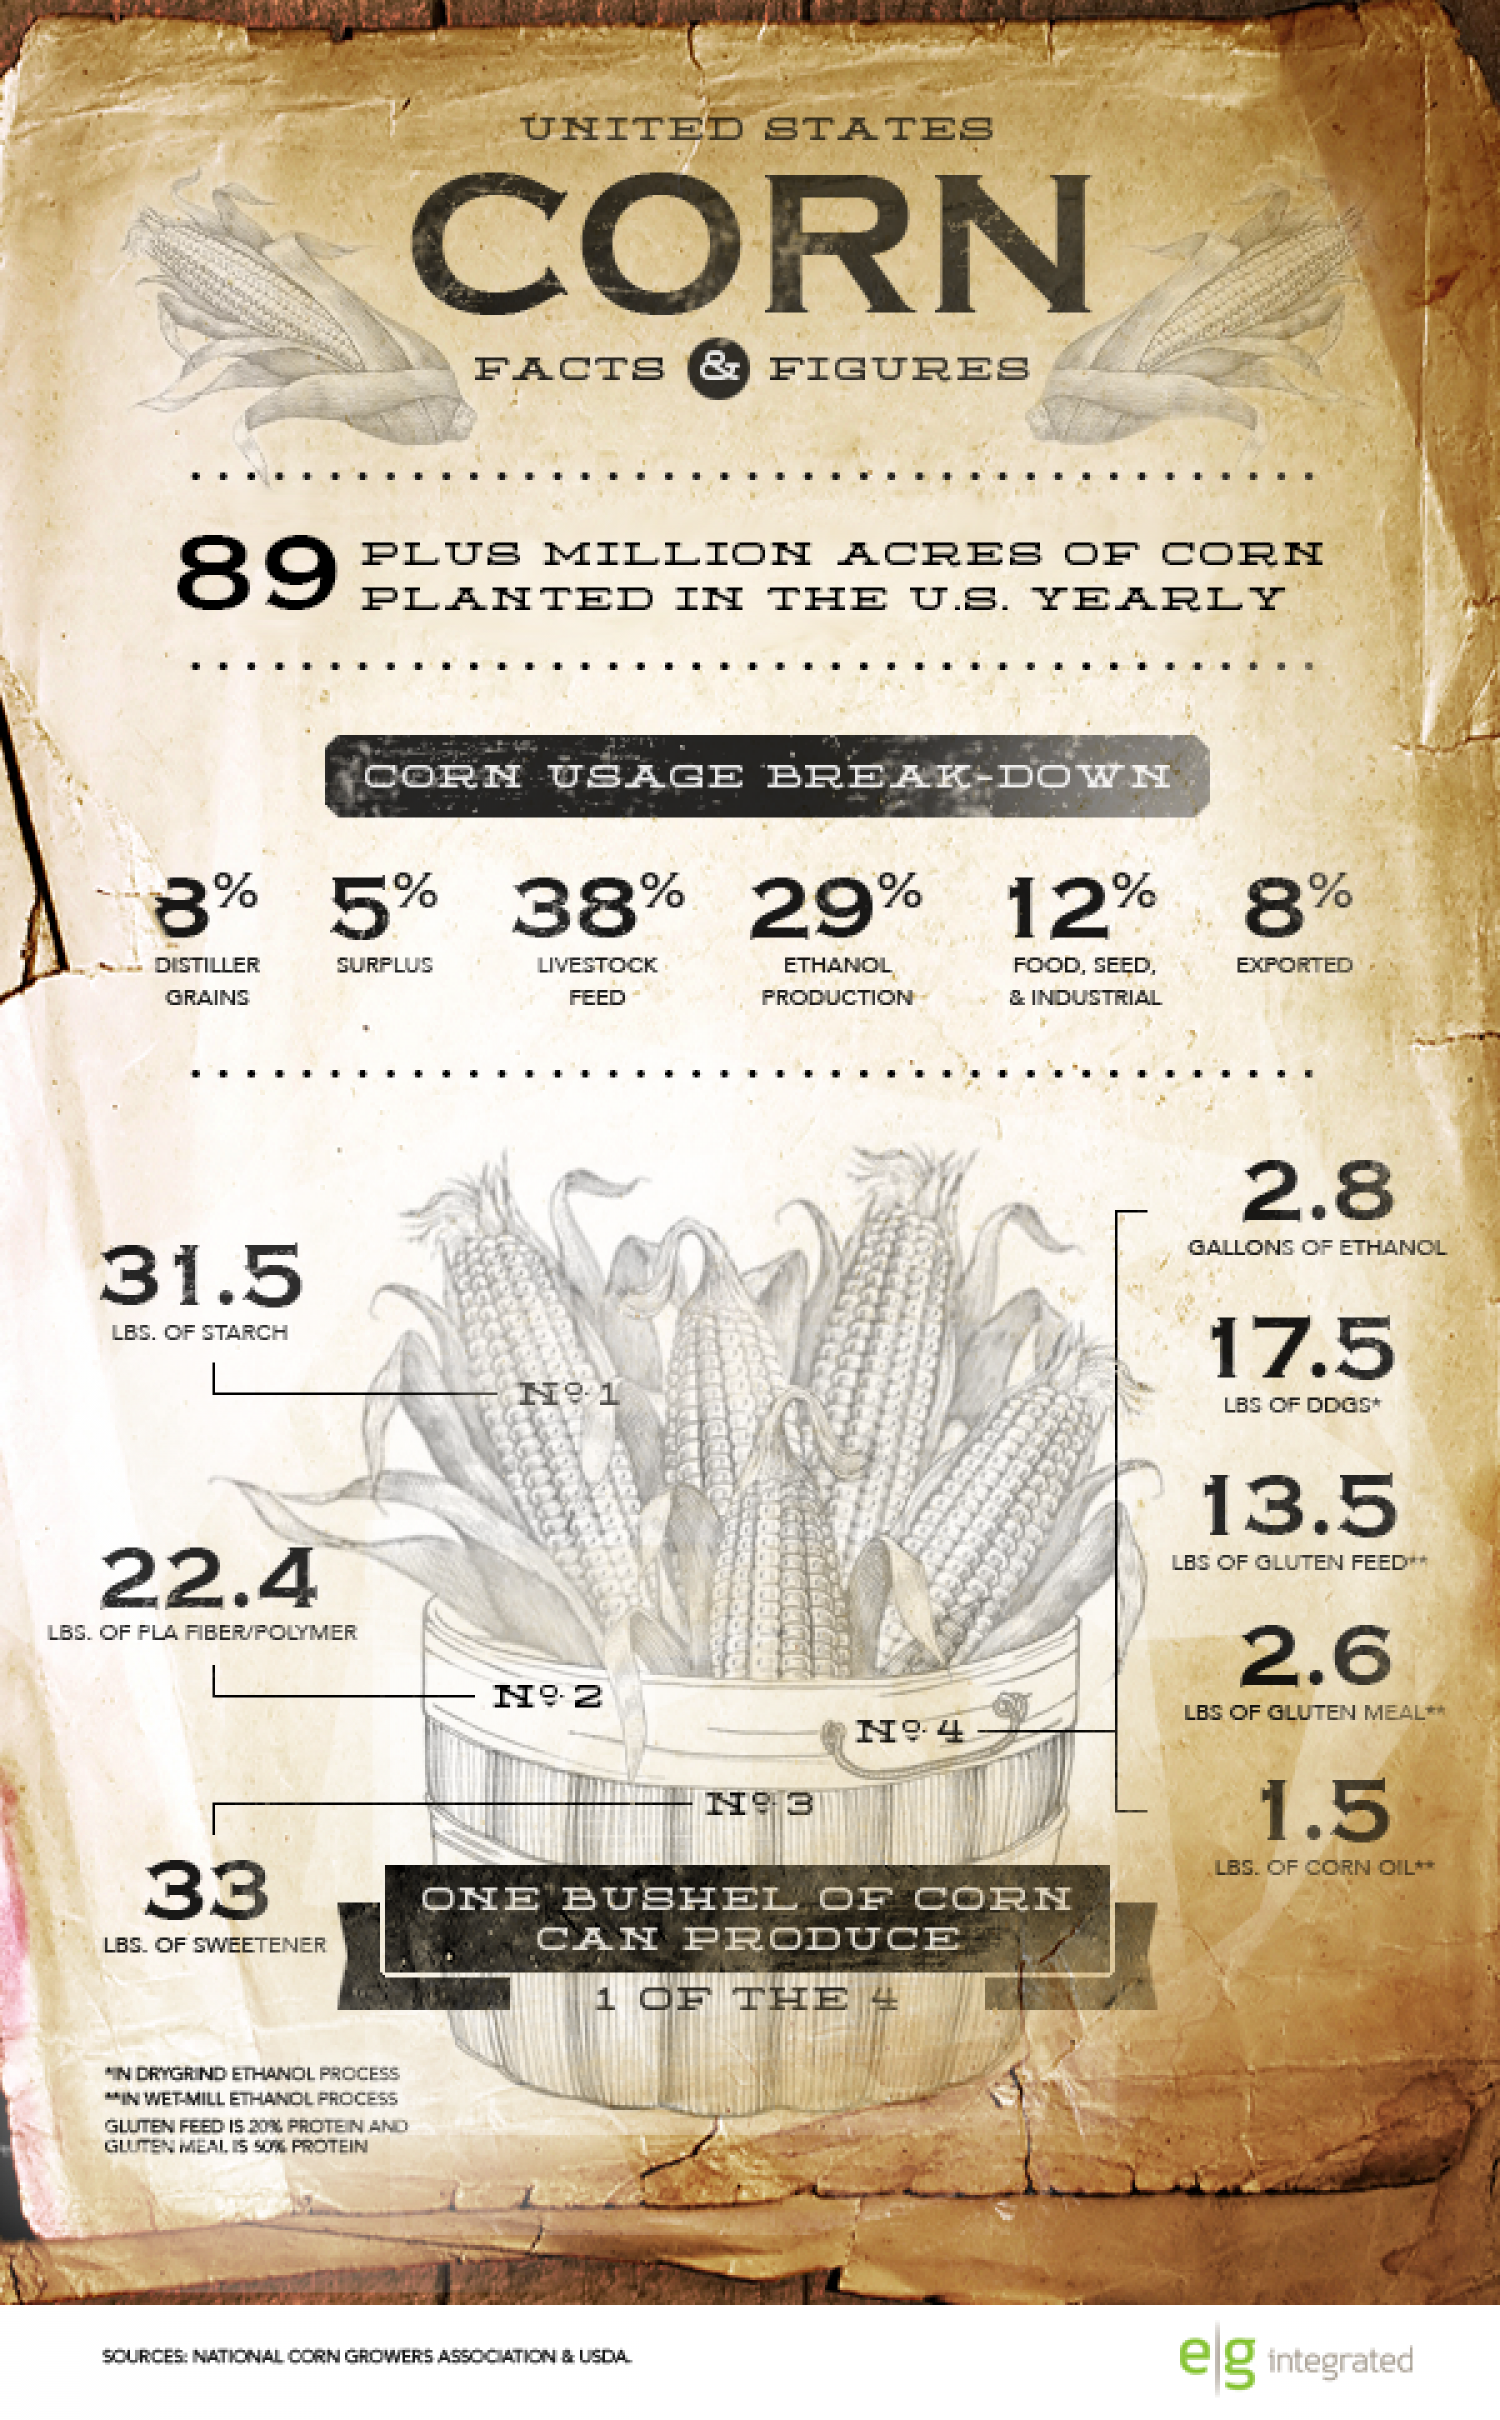 Corn Facts & Figures Infographic